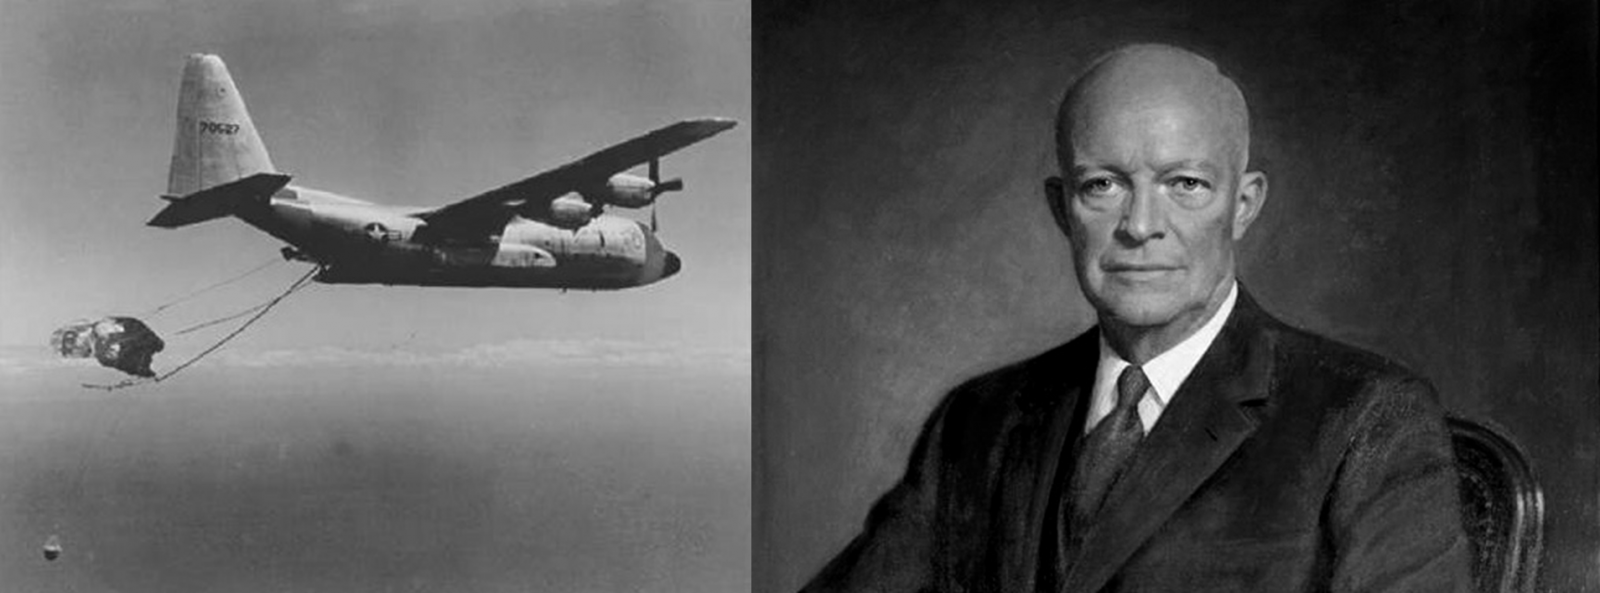 President Dwight D. Eisenhower with Corona satellite pickup by C-130 White House DoD images posted on SpaceFlight Insider